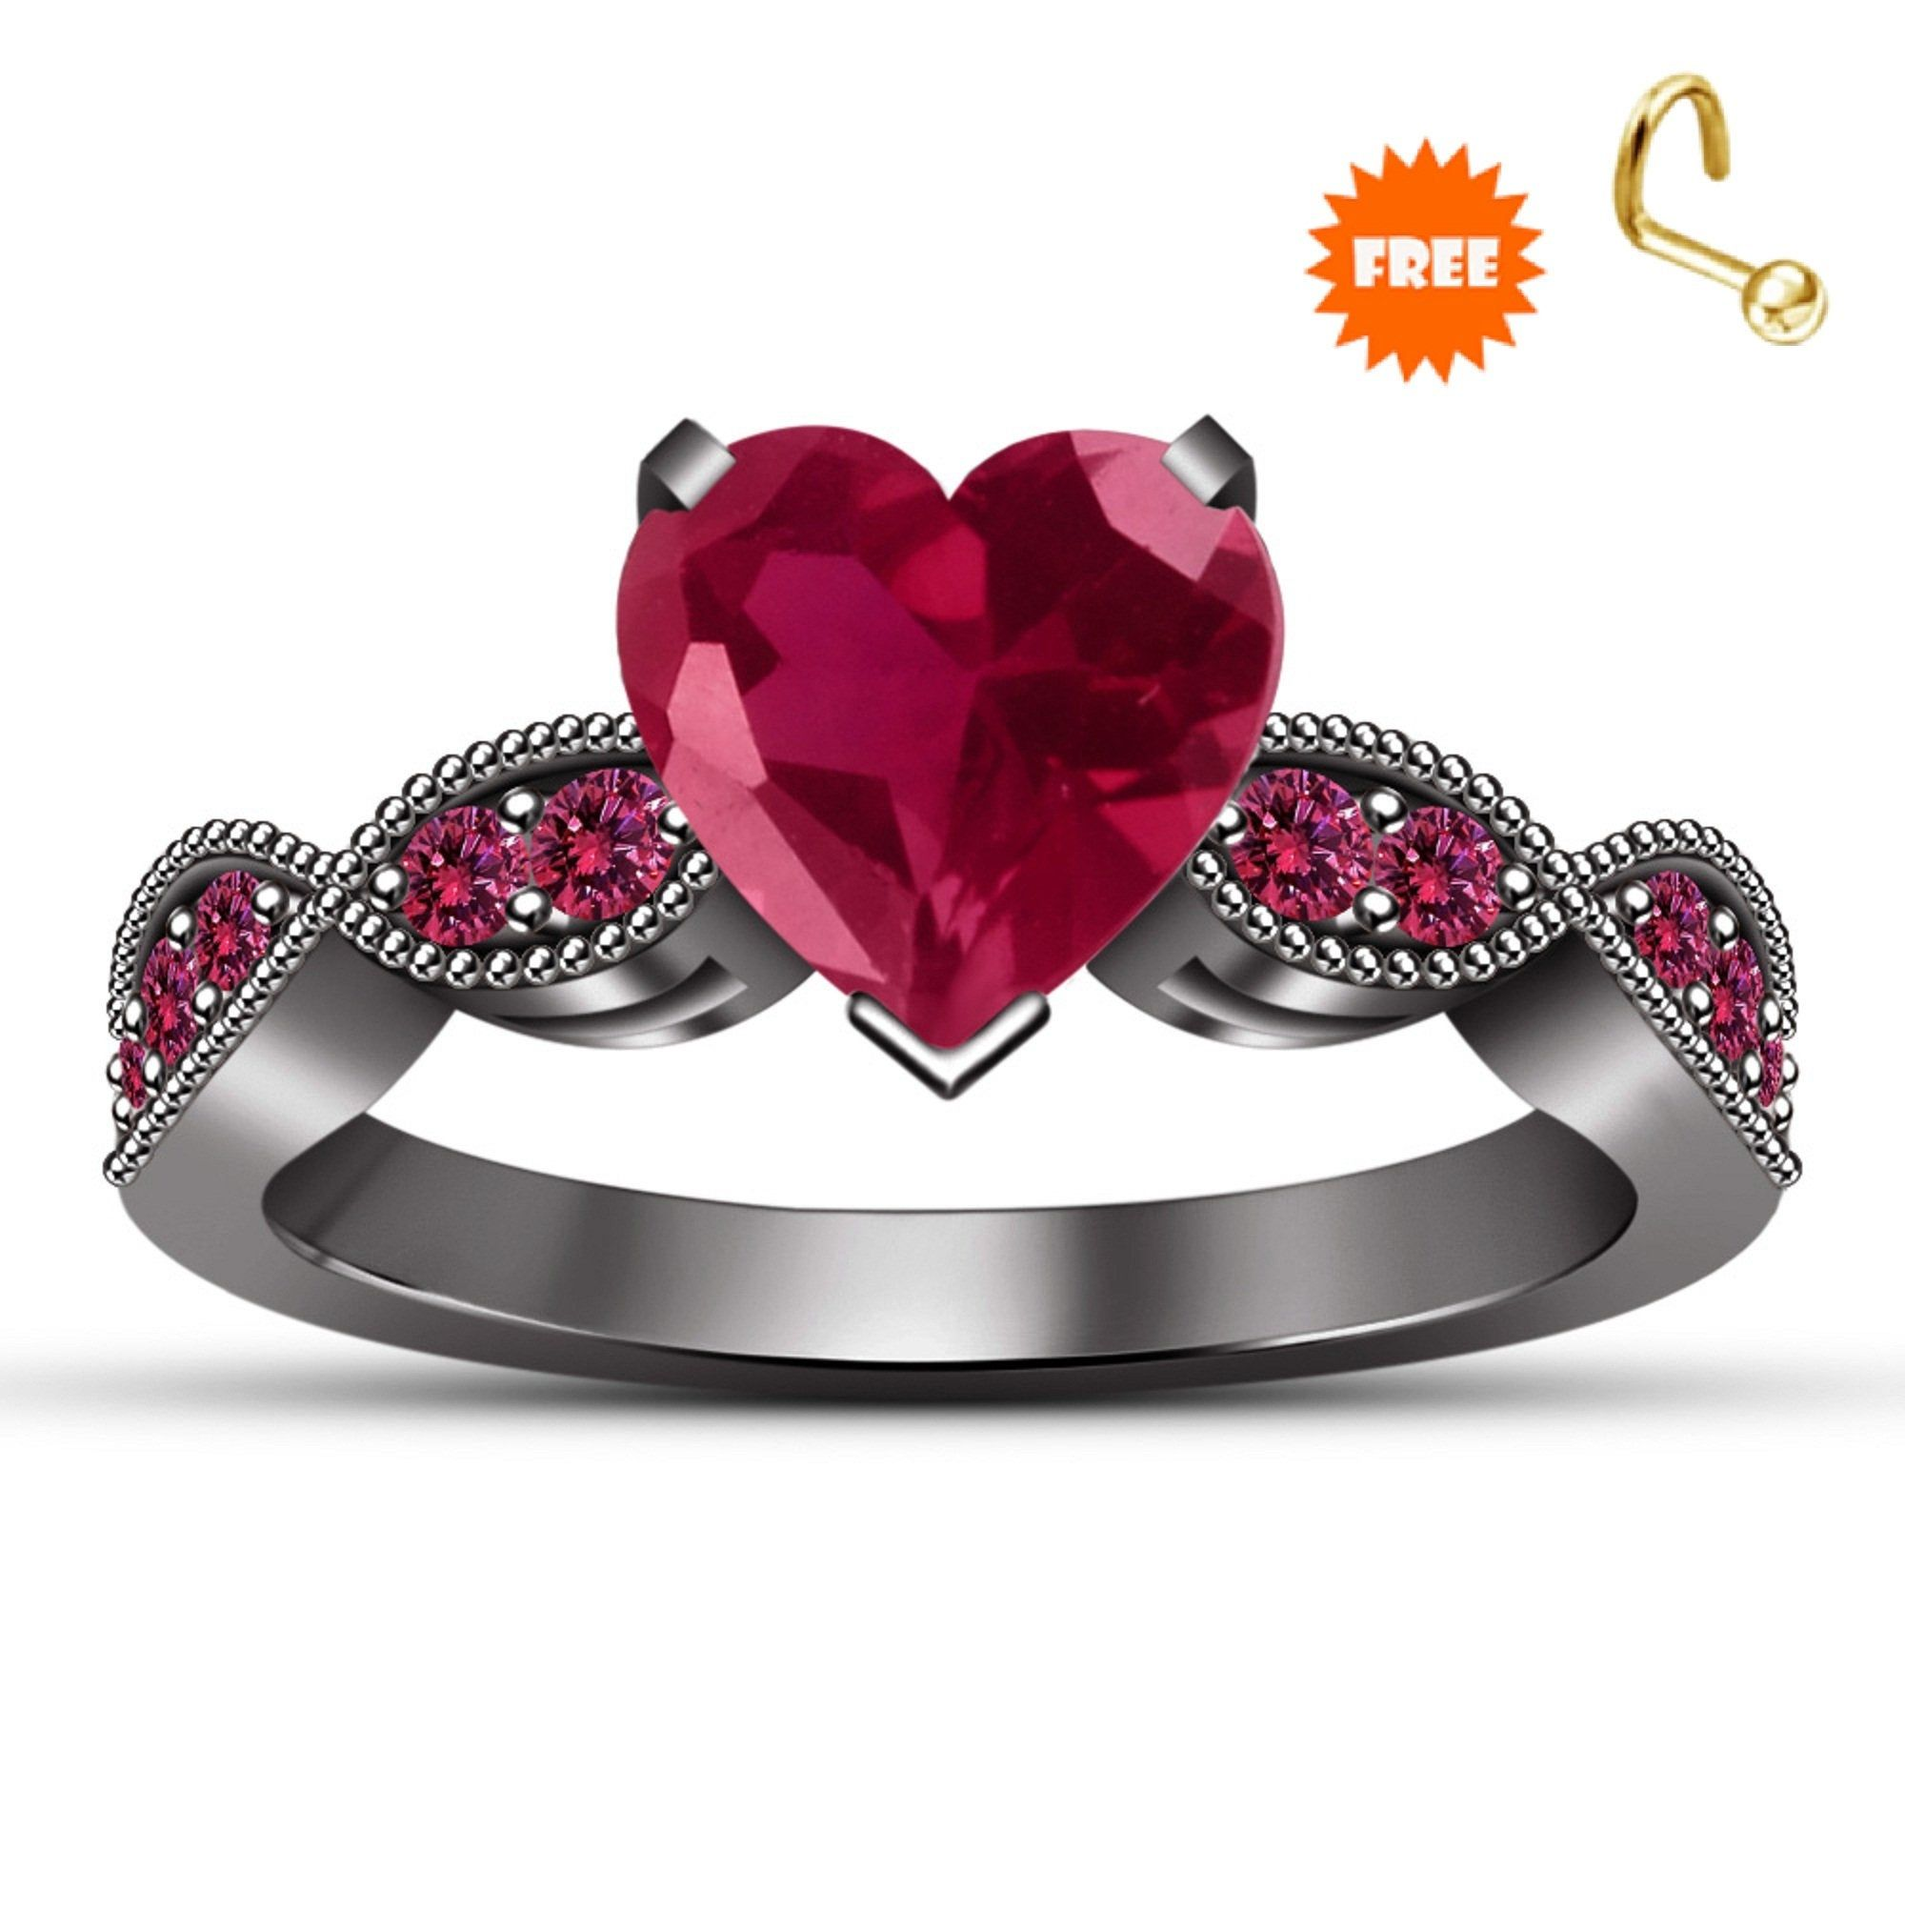 Sterling Silver Round Pink Sapphire Simulated Diamond Art Deco Ring Women/'s Solitaire Engagement Wedding Promise Ring